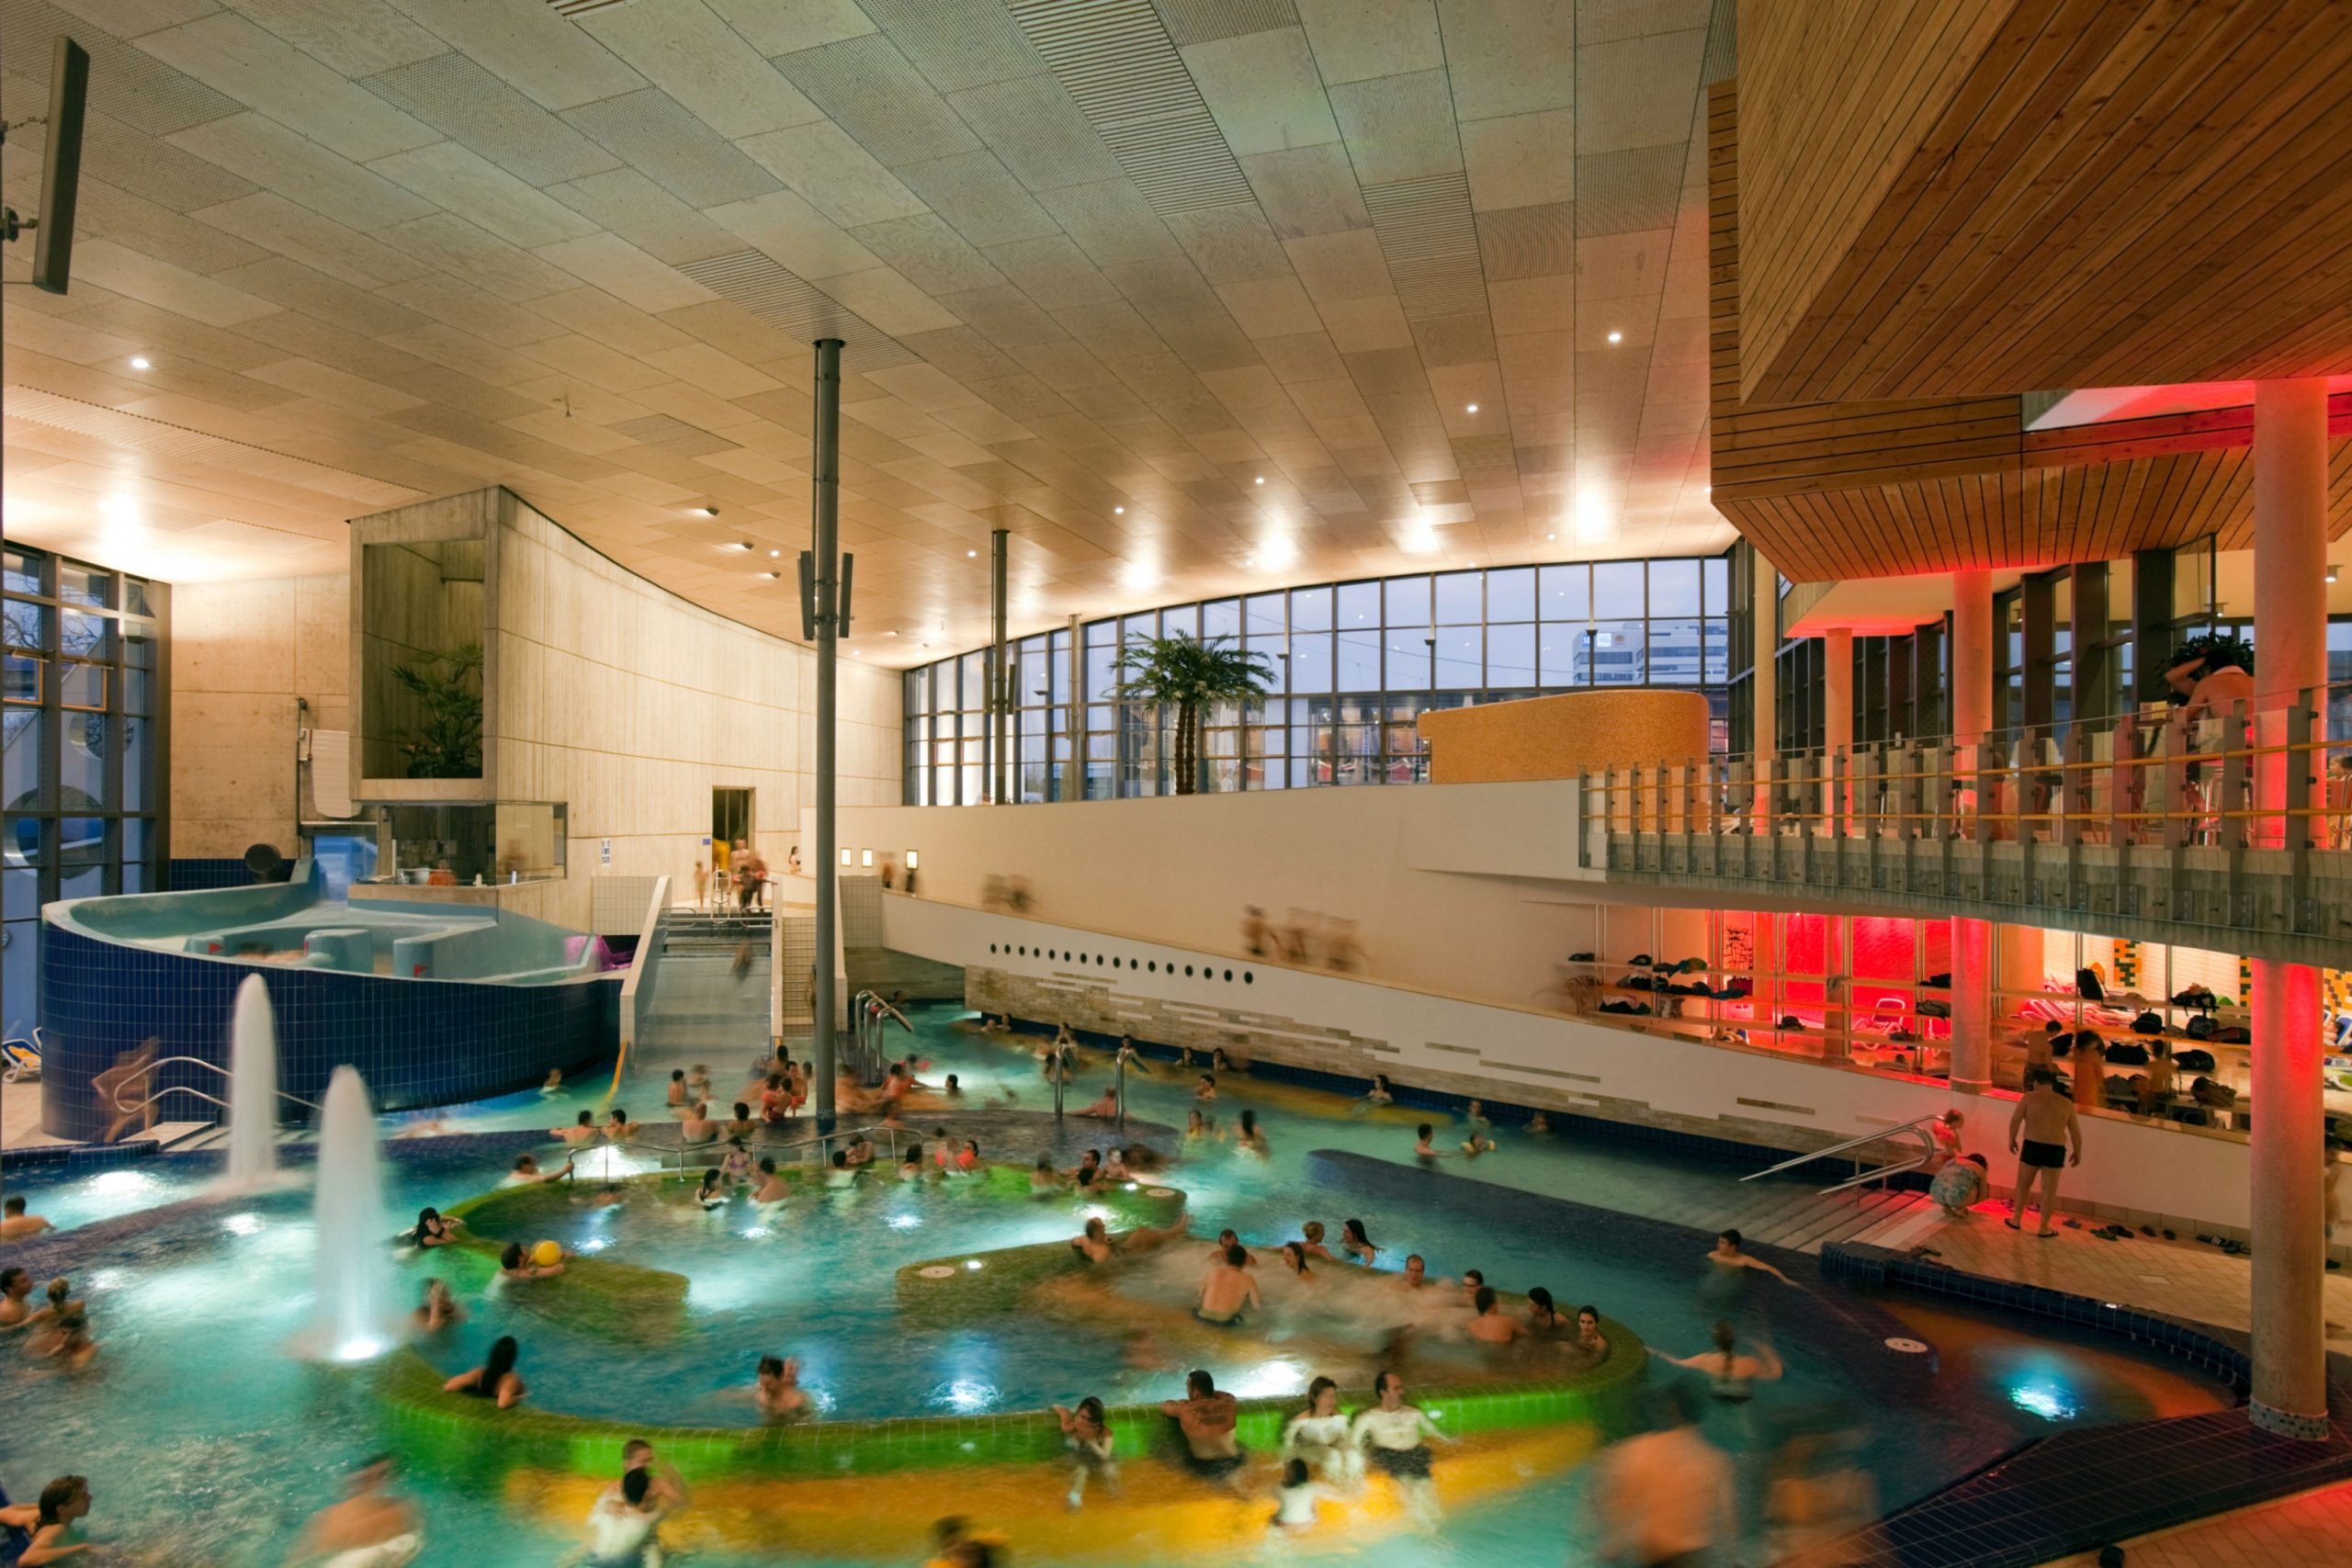 Projects - Public - Europabad Swimming Pool intérieur Piscine Karlsruhe